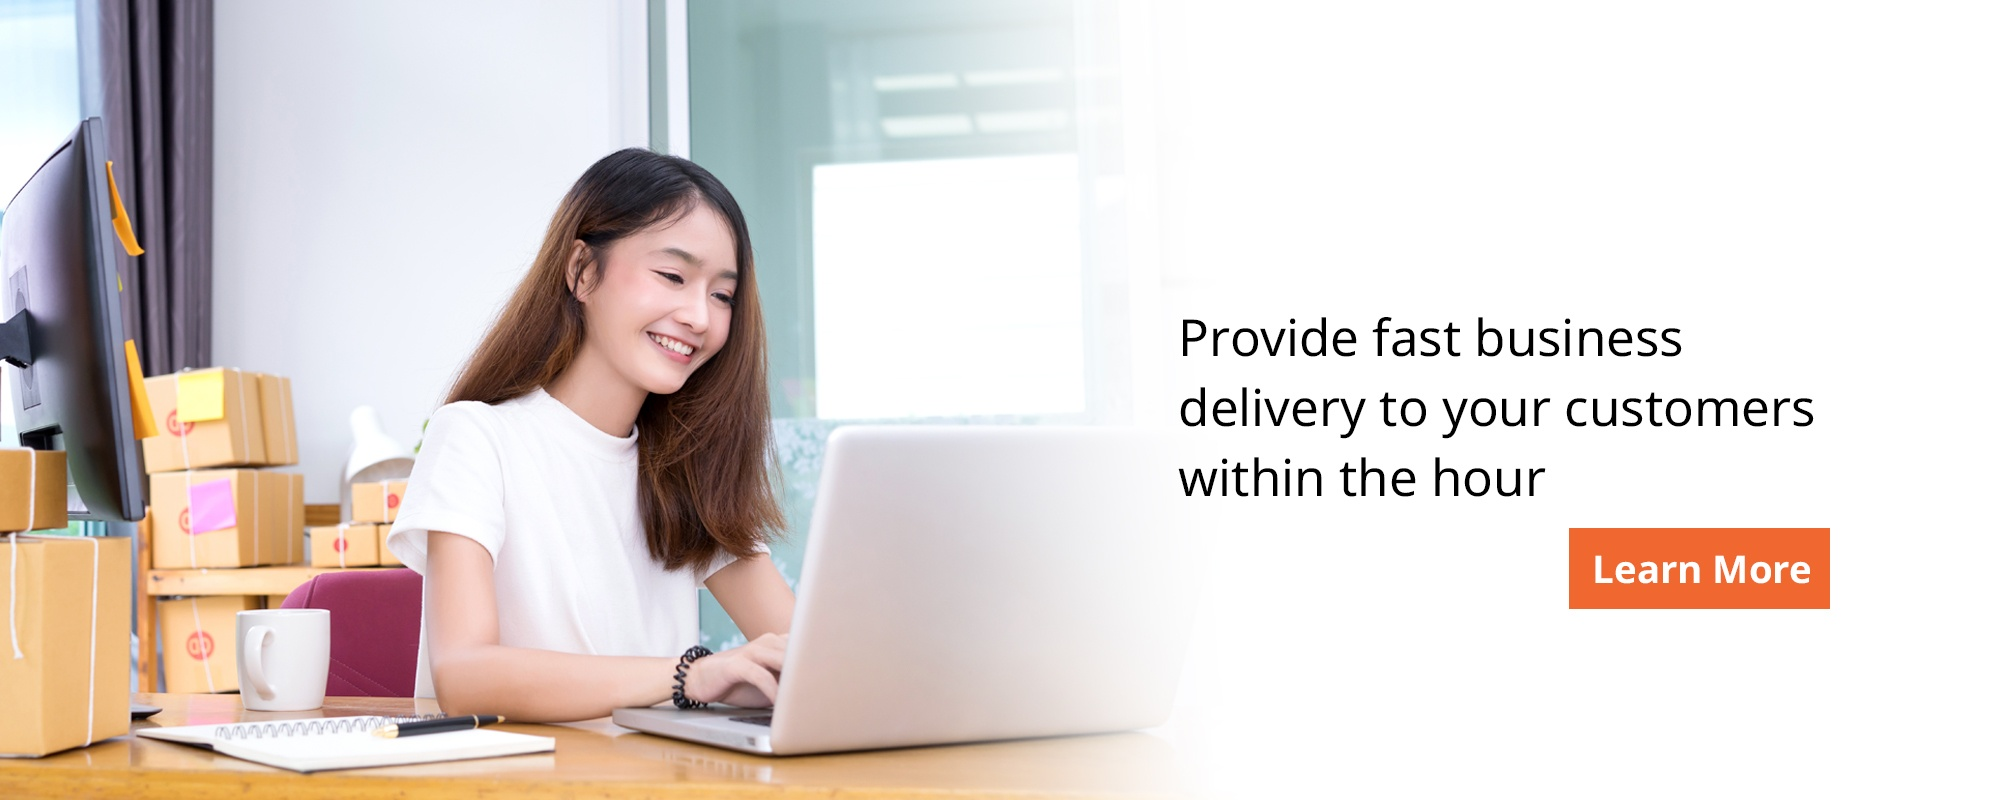 Lalamove Bangkok provides fast business delivery to your customers within the hour